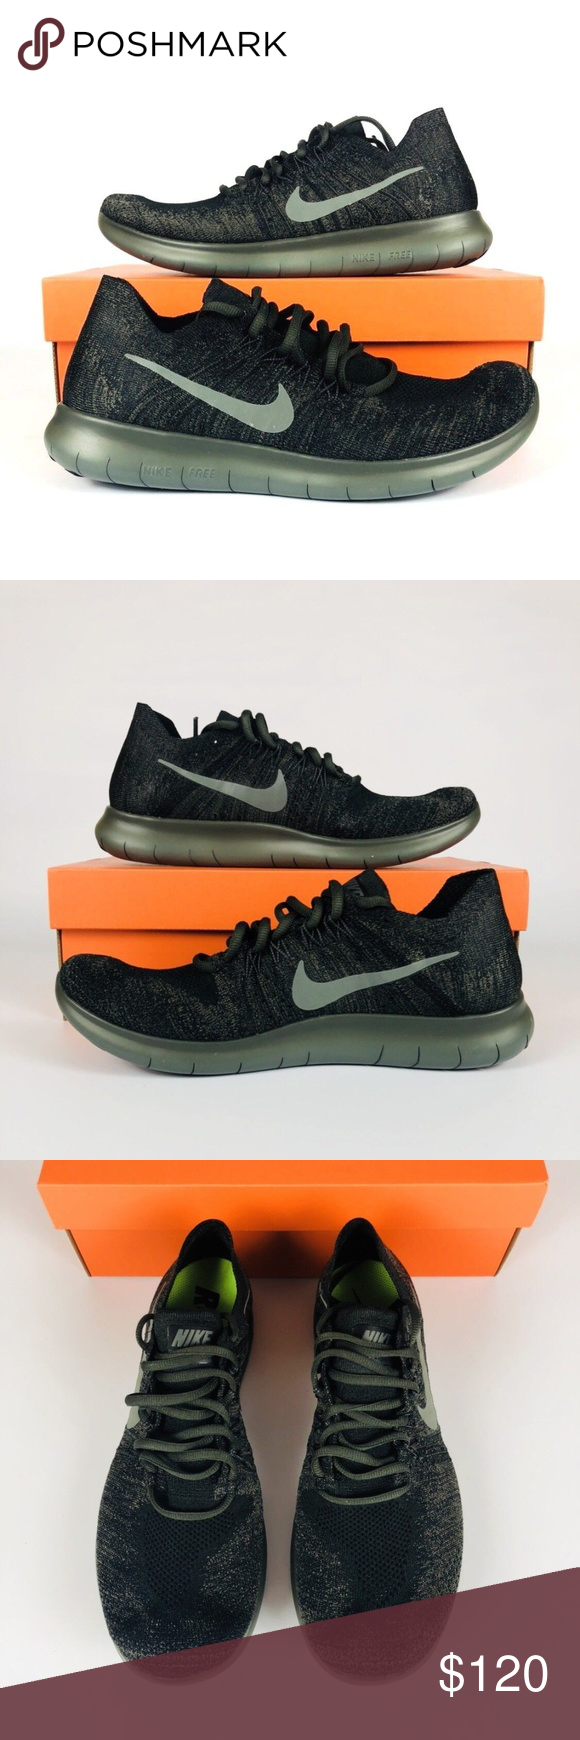 9a694f5b78392 Nike Free RN Flyknit 2017 Nike Free RN Flyknit 2017 Black River Rock Grey  880843-012 Men s Running Shoes New With Box Shipped Double Boxed Nike Shoes  ...